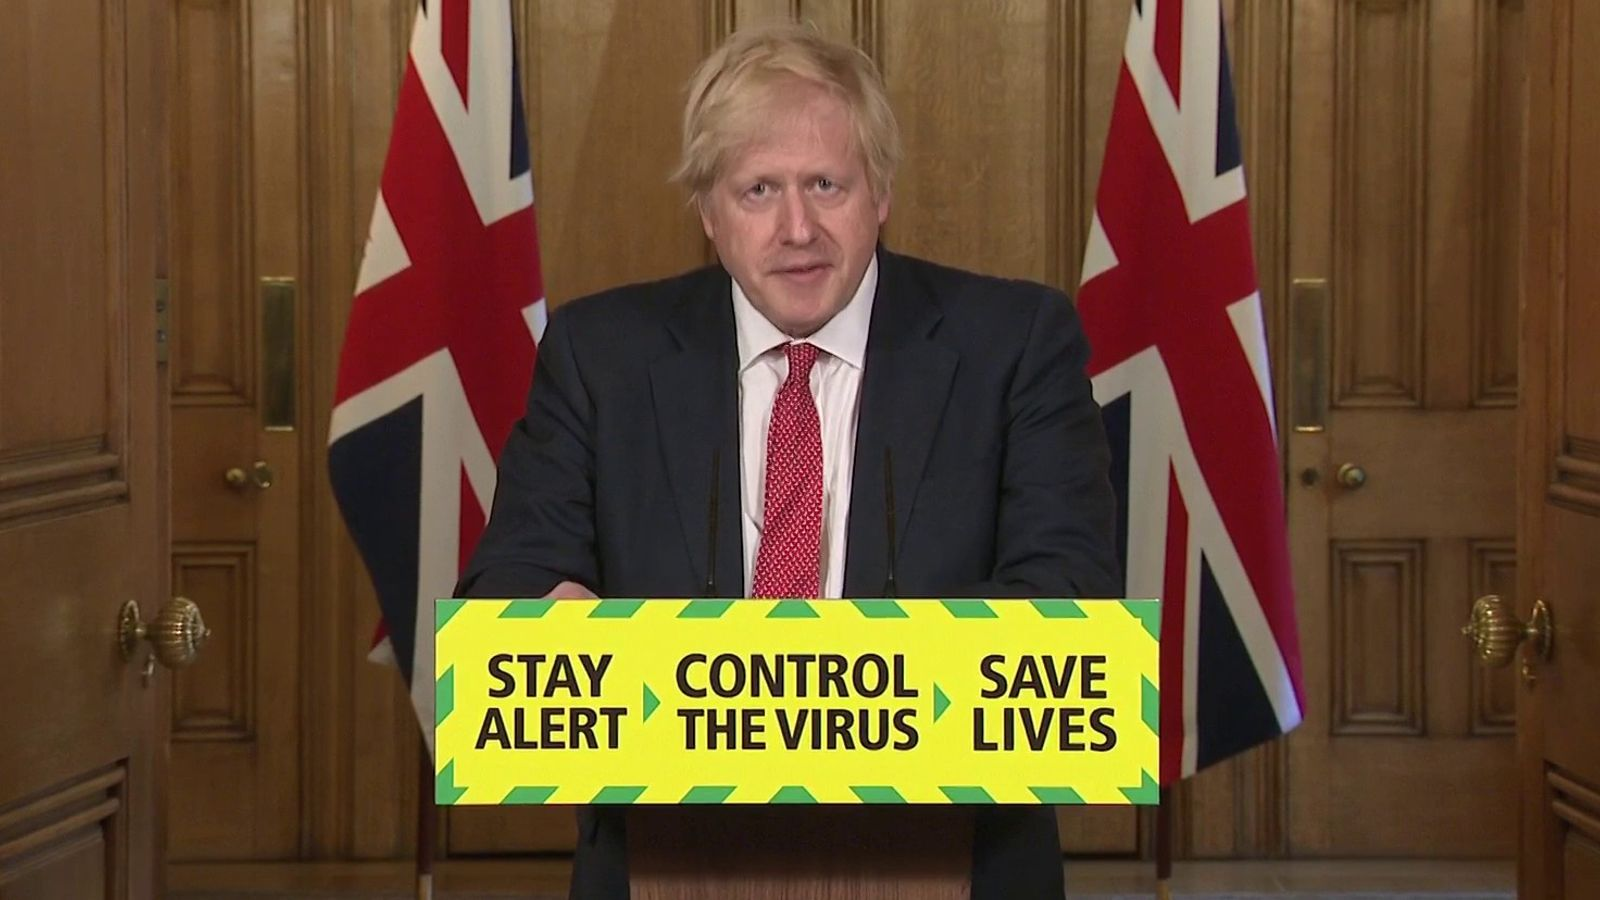 As It Happened Covid 19 Vaccine Is By No Means Guaranteed Pm Politics News Sky News